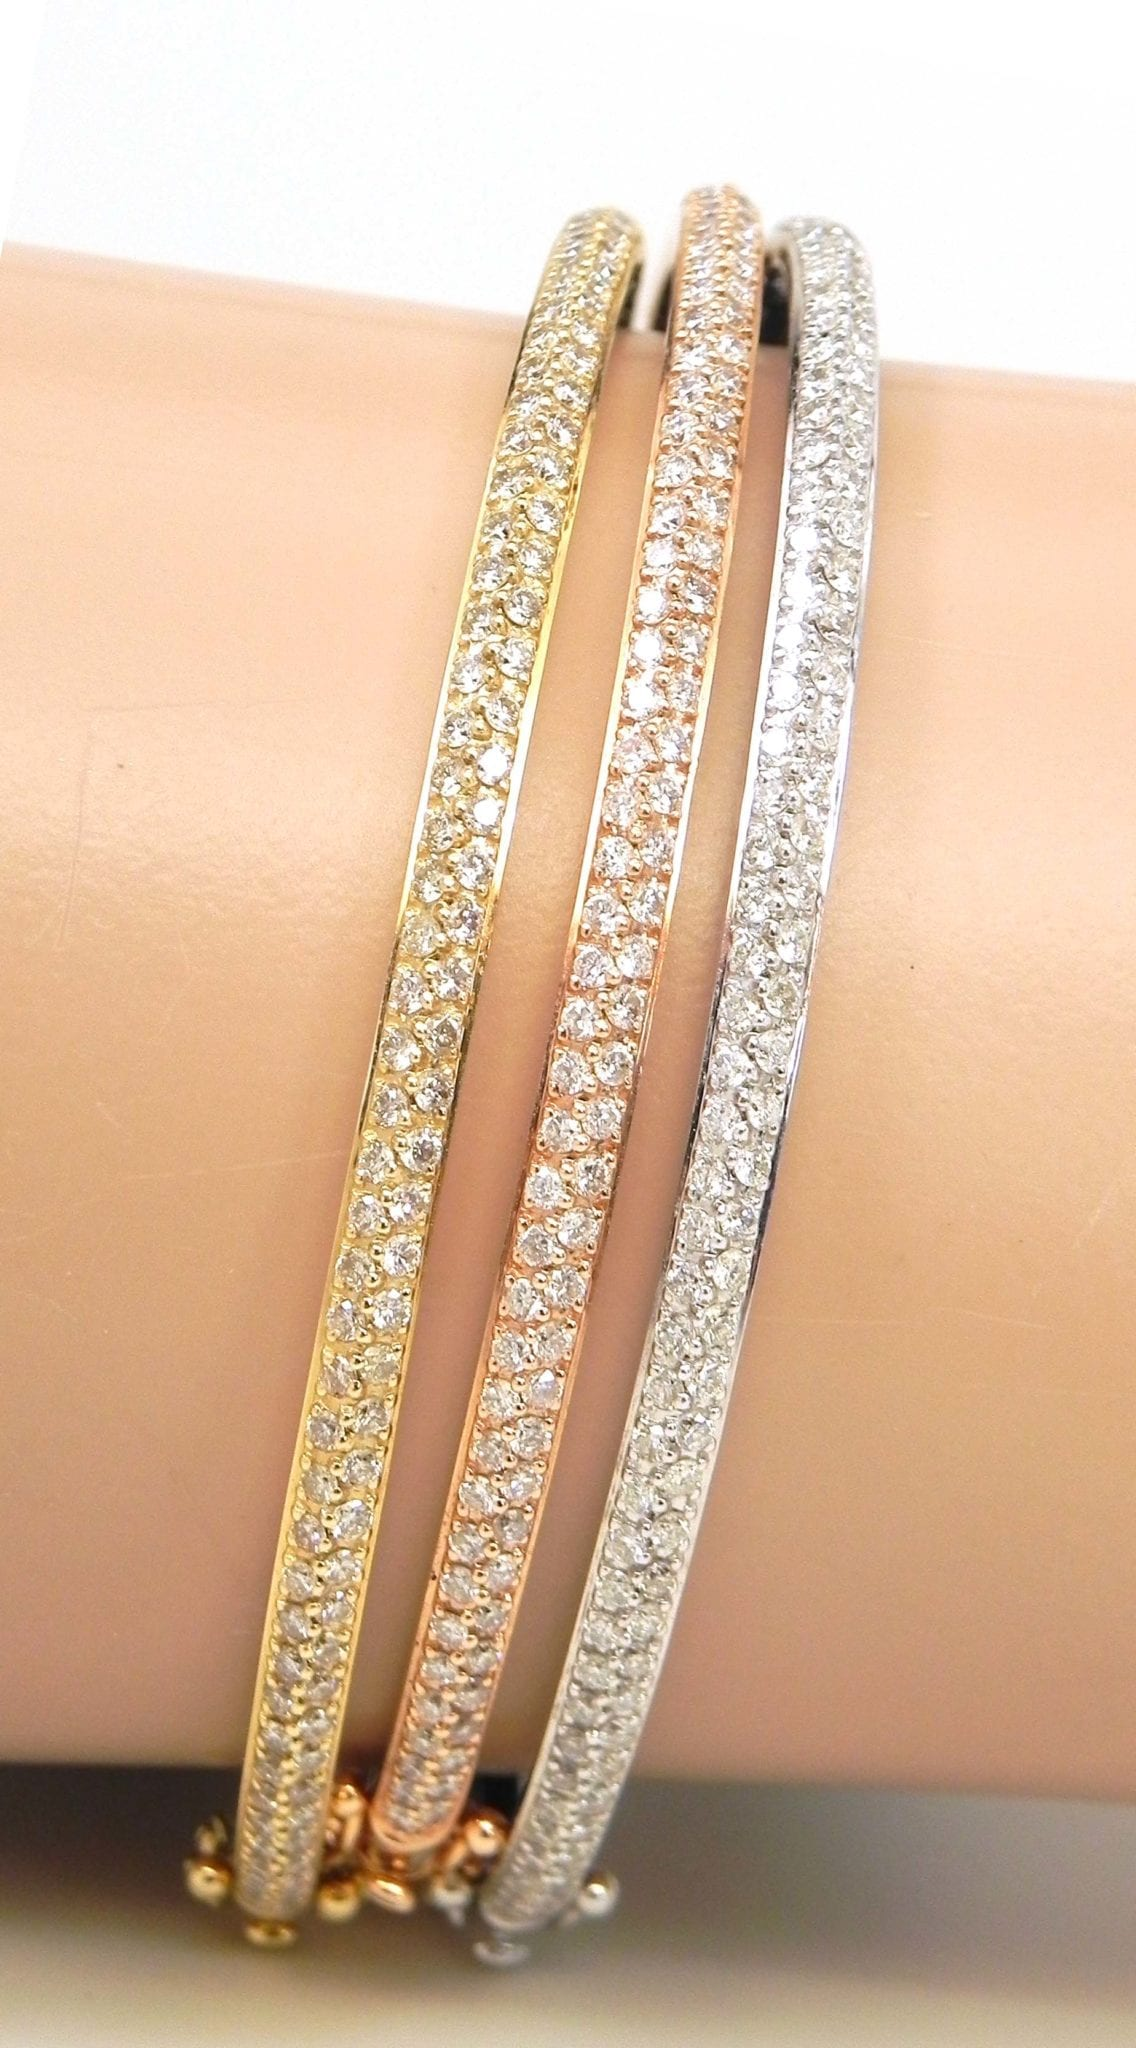 handmade comfort women s tone bands wedding gold band pin fit color size tri colored